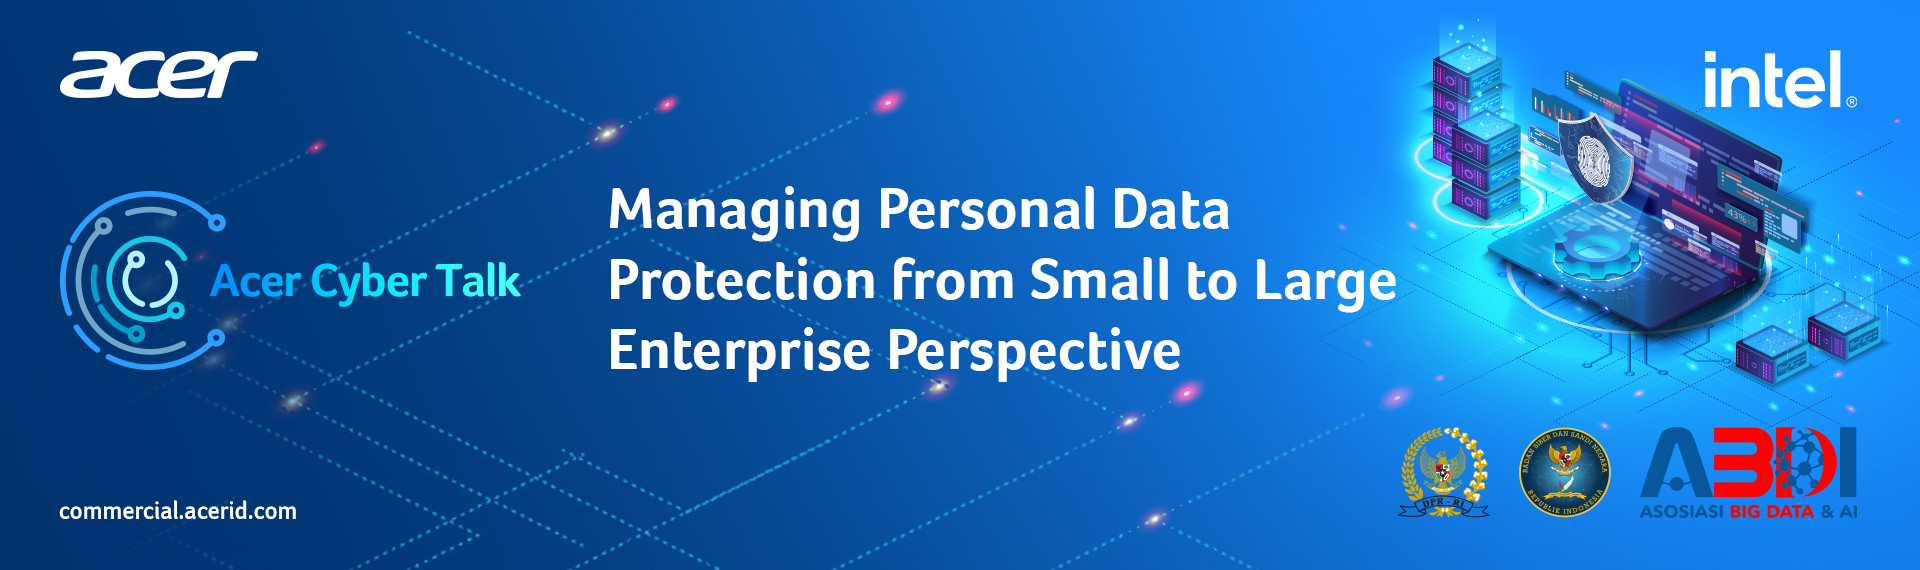 Webinar-Acer-Cyber-Talk-Managing-Personal-Data-Protection-from-Small-to-Large-Enterprise-Perspective